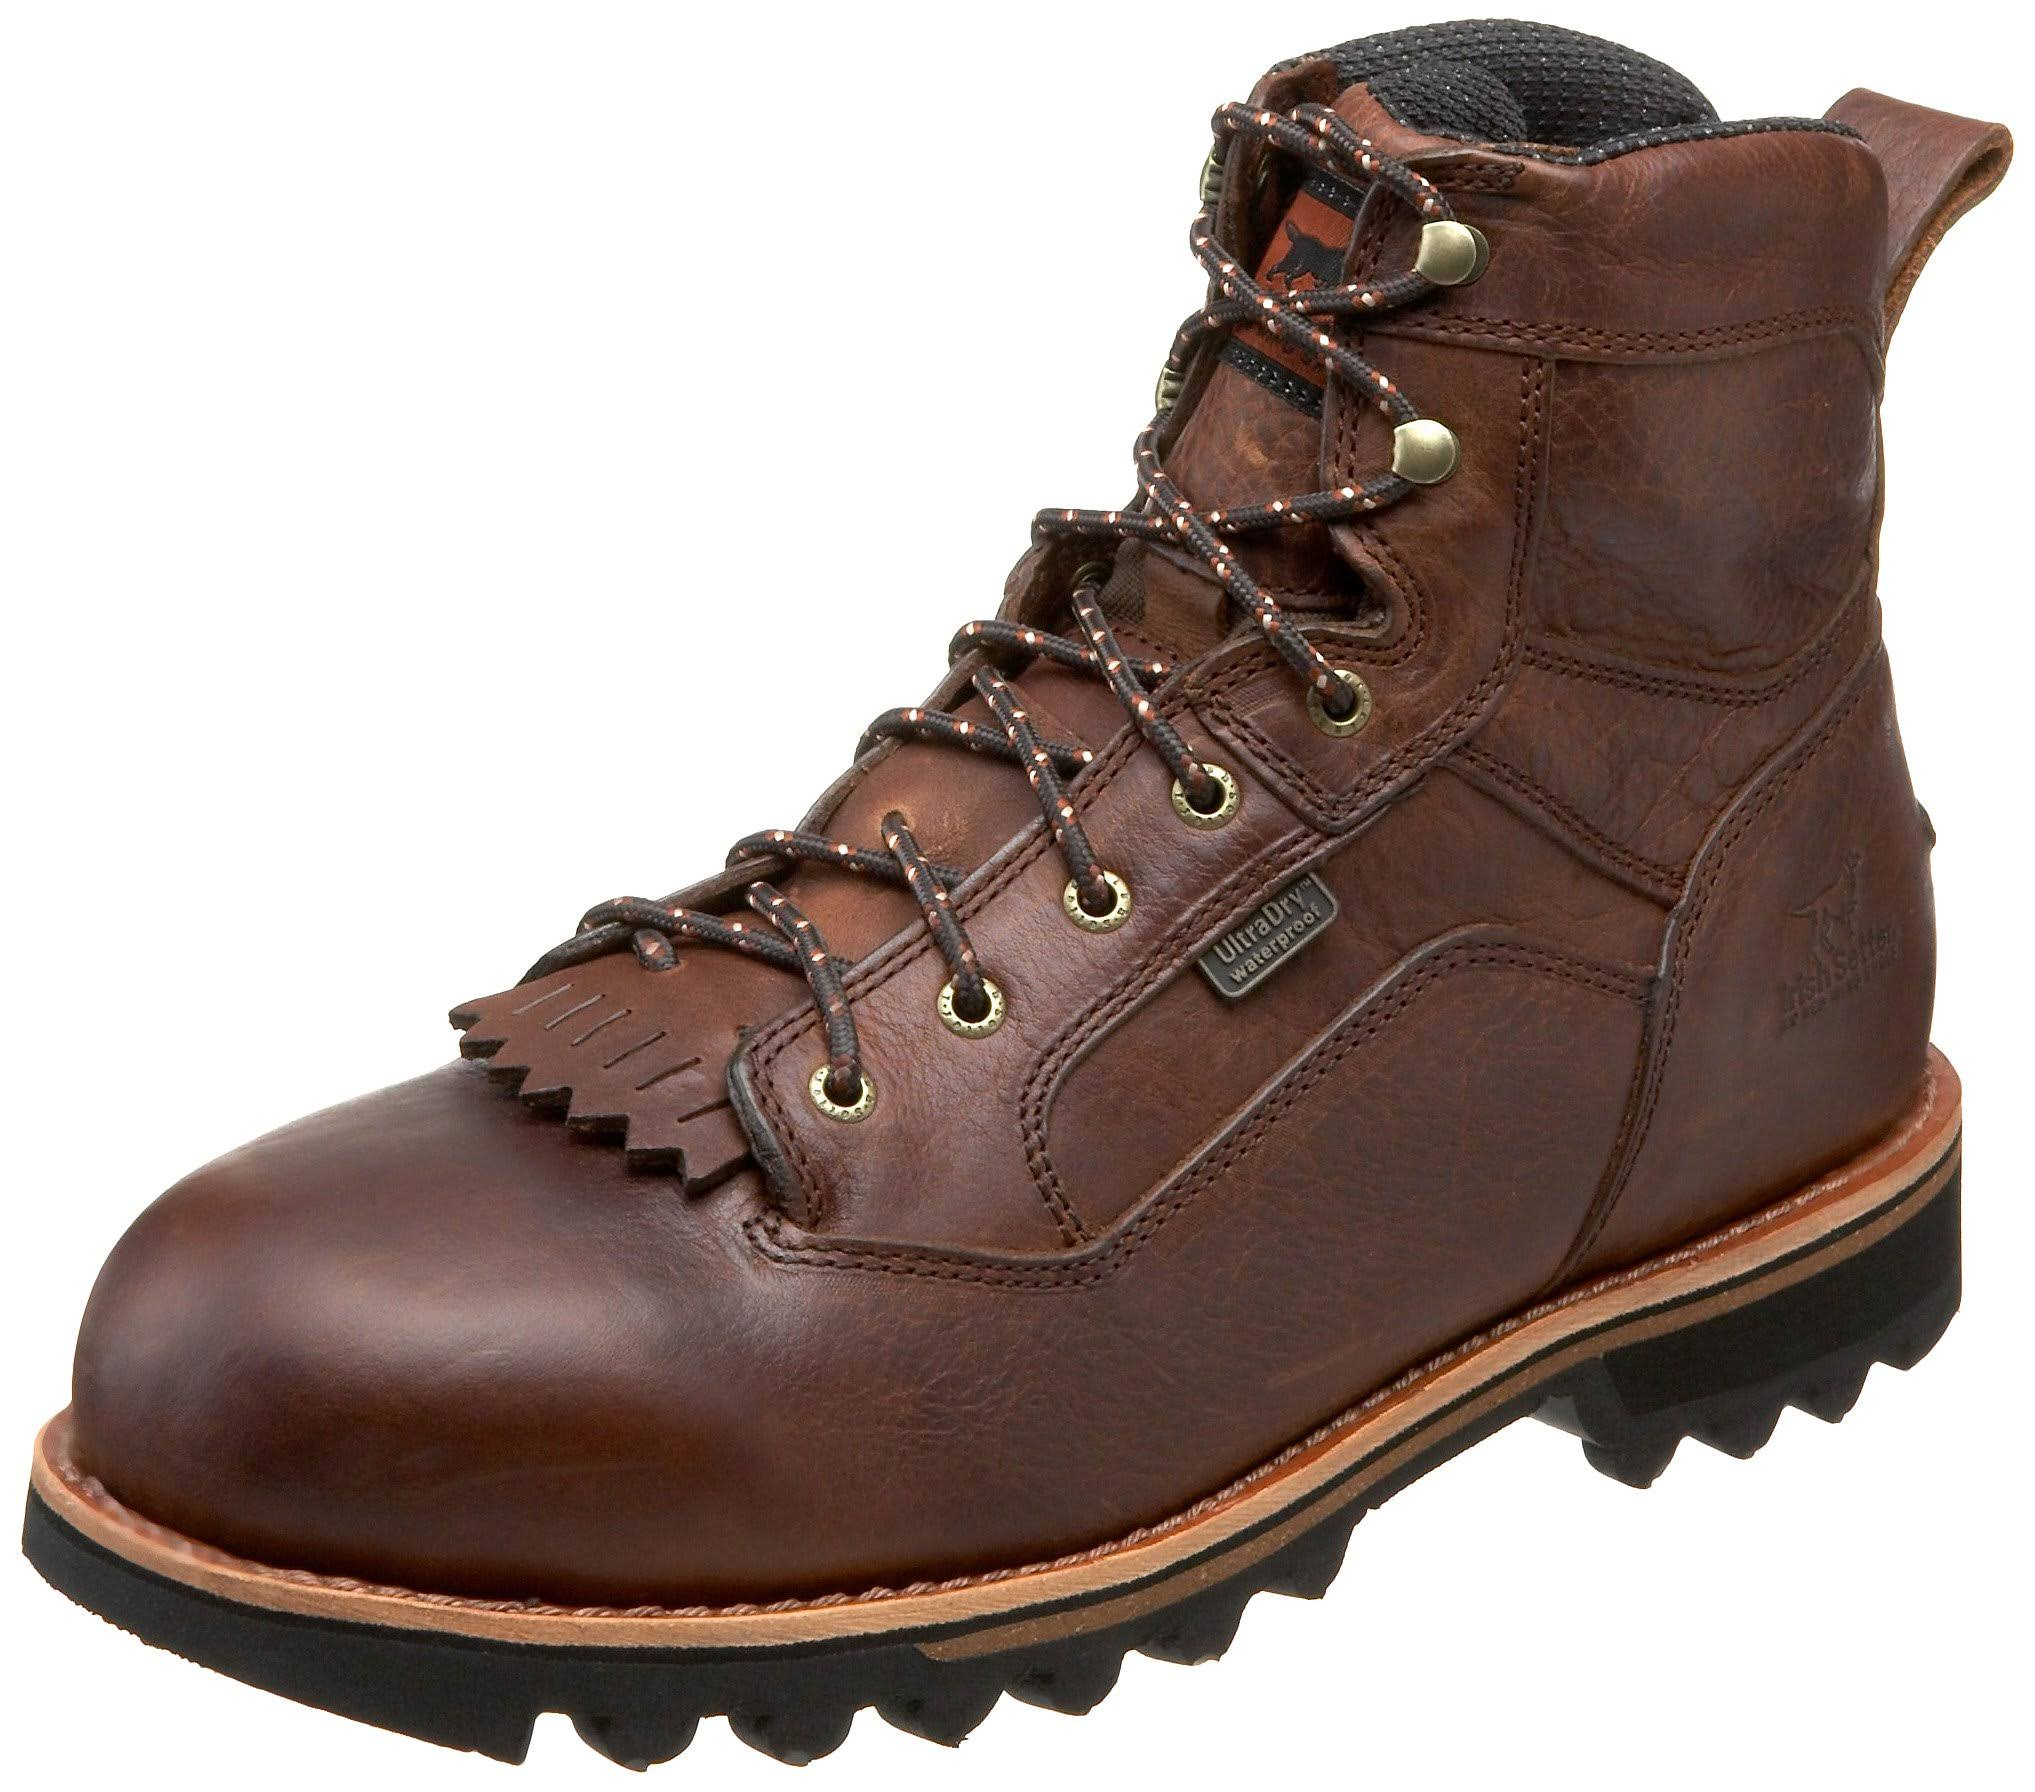 Irish Setter Men's Trailblazer Hunting Boots-10EE Brown